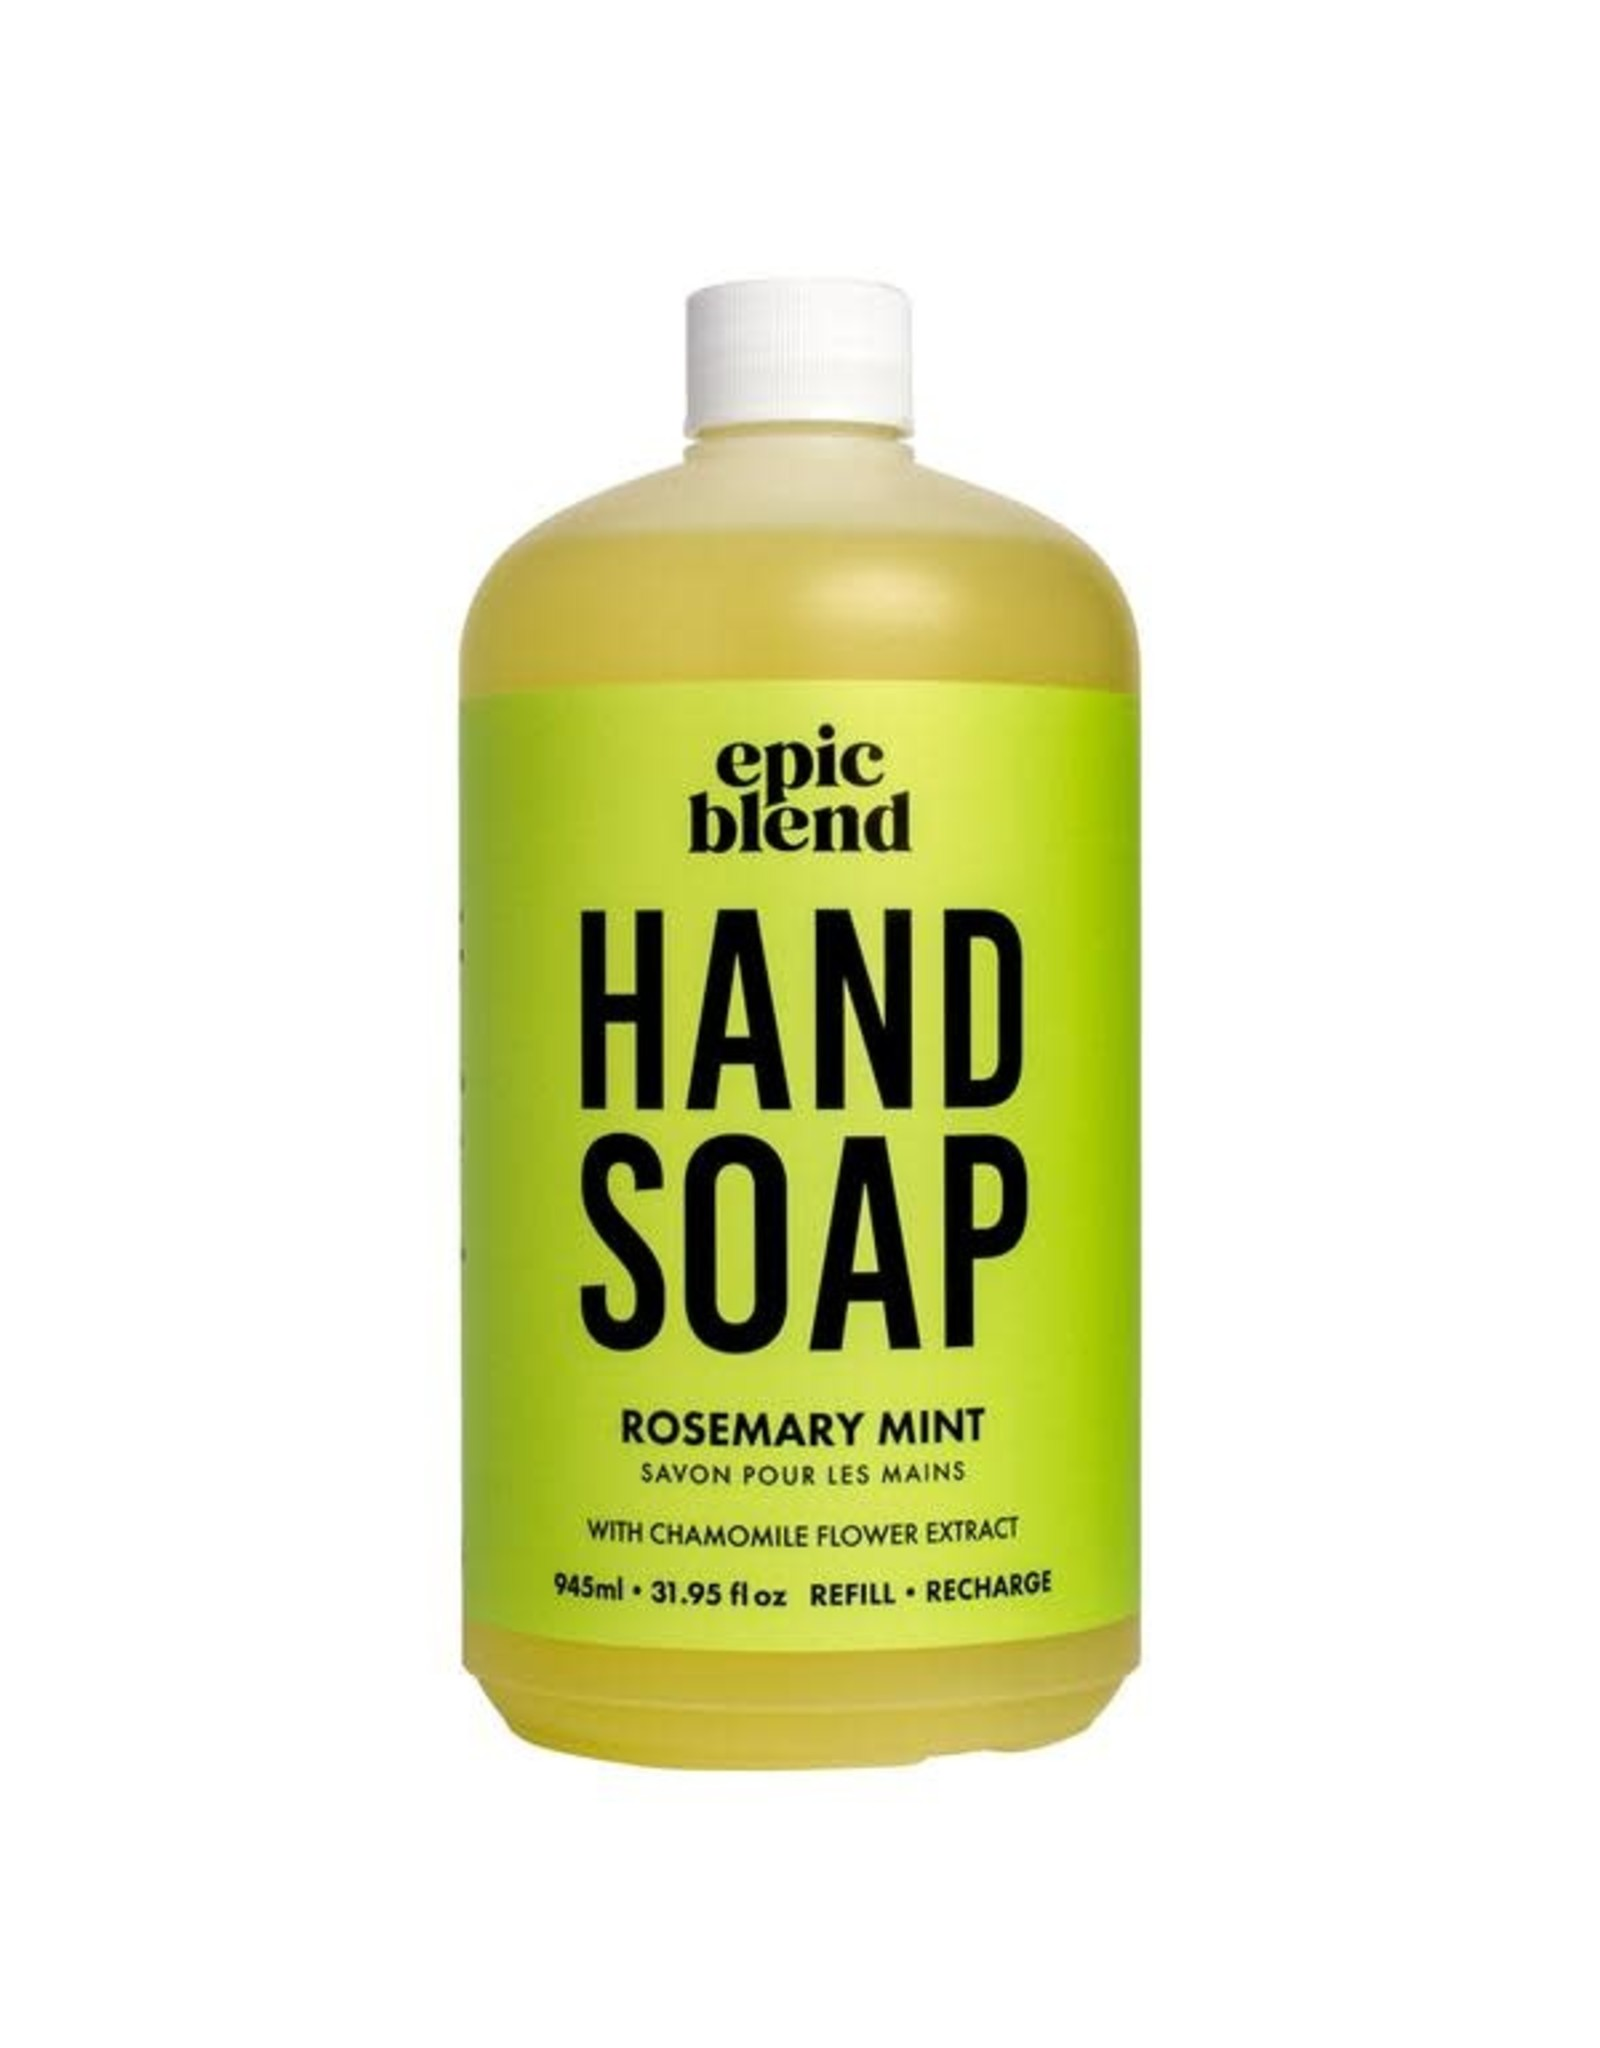 Epic Blend Rosemary Mint Hand Soap